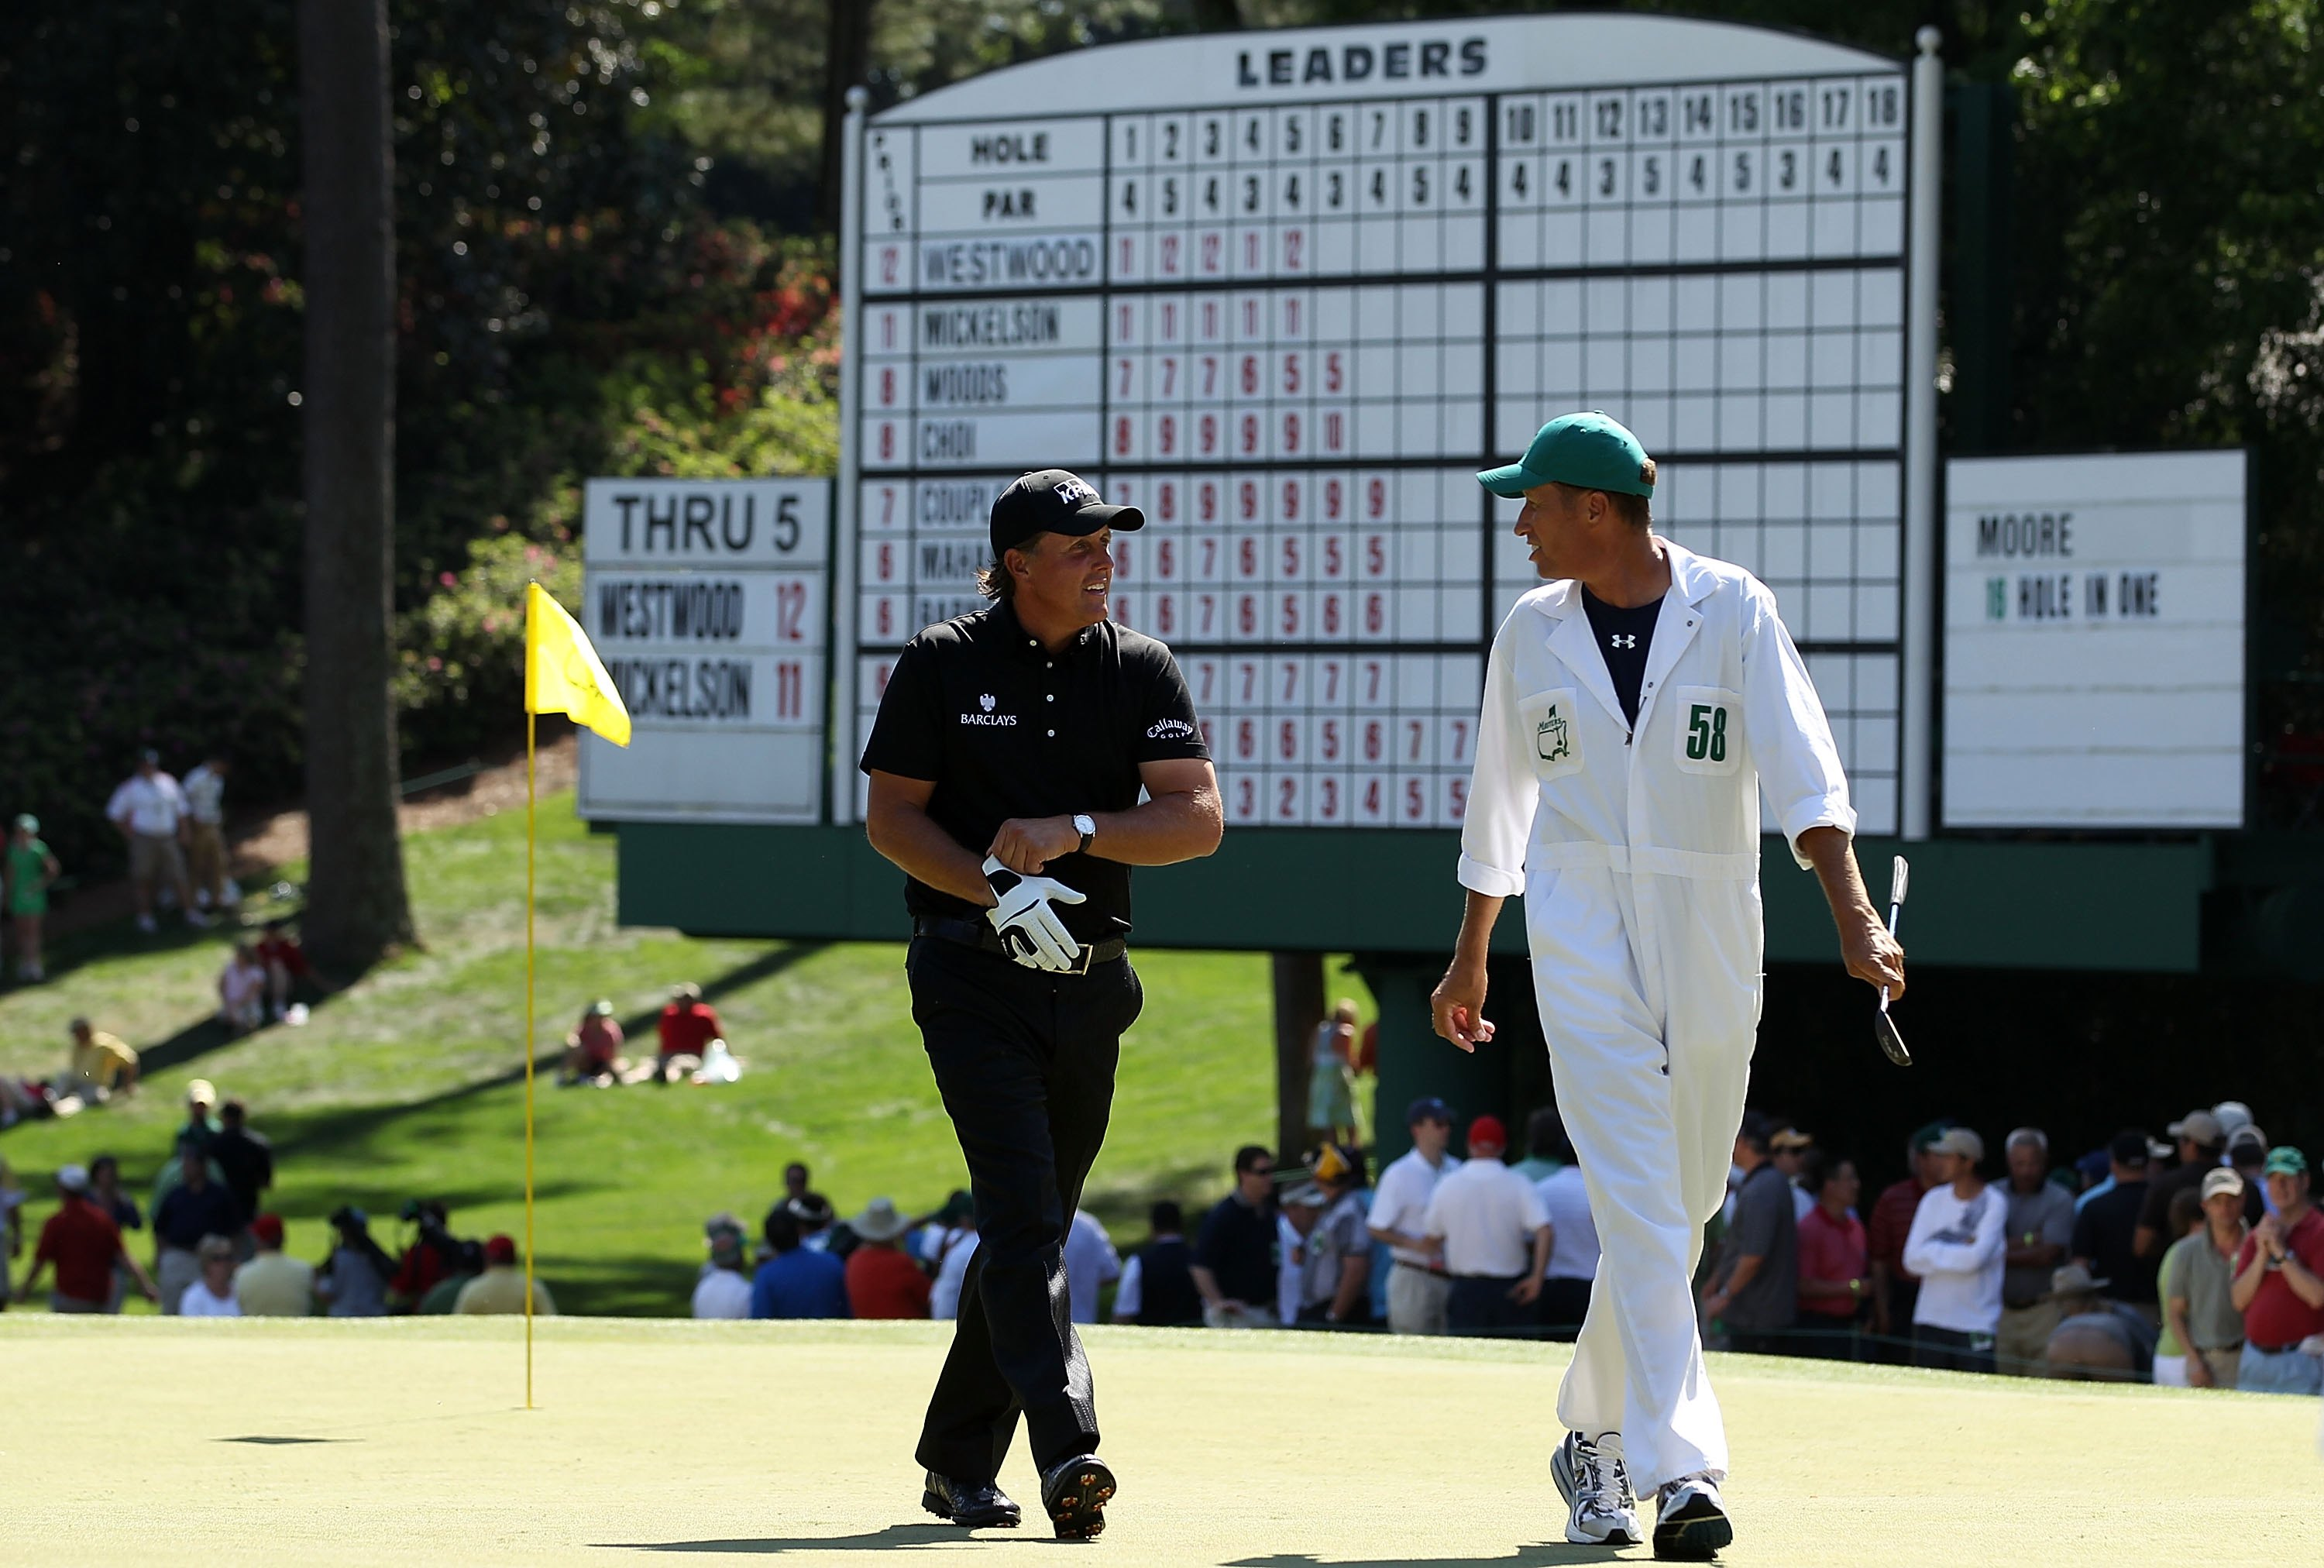 AUGUSTA, GA - APRIL 11:  Phil Mickelson and Jim McKay during the final round of the 2010 Masters Tournament at Augusta National Golf Club on April 11, 2010 in Augusta, Georgia.  (Photo by Streeter Lecka/Getty Images for Golf Week)